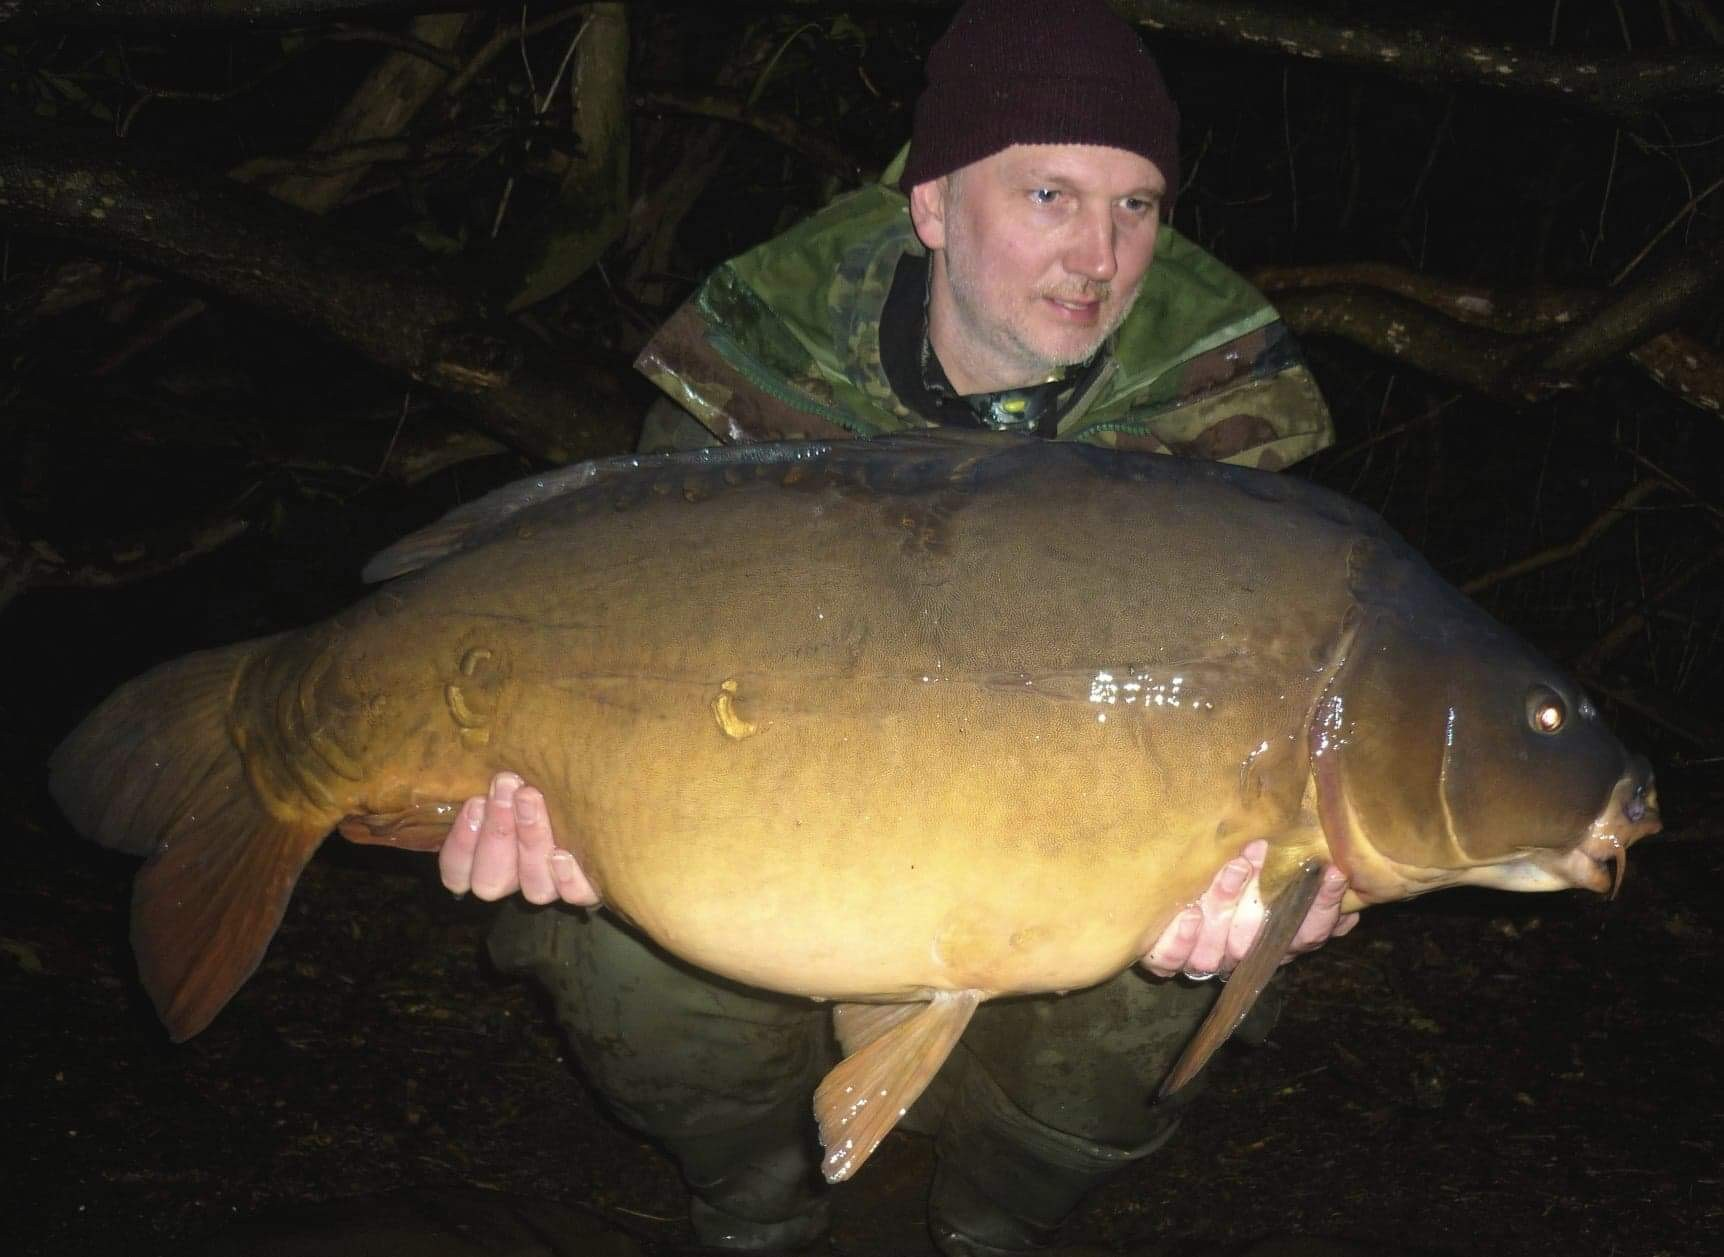 38-00 'Tiger Mirror' caught on